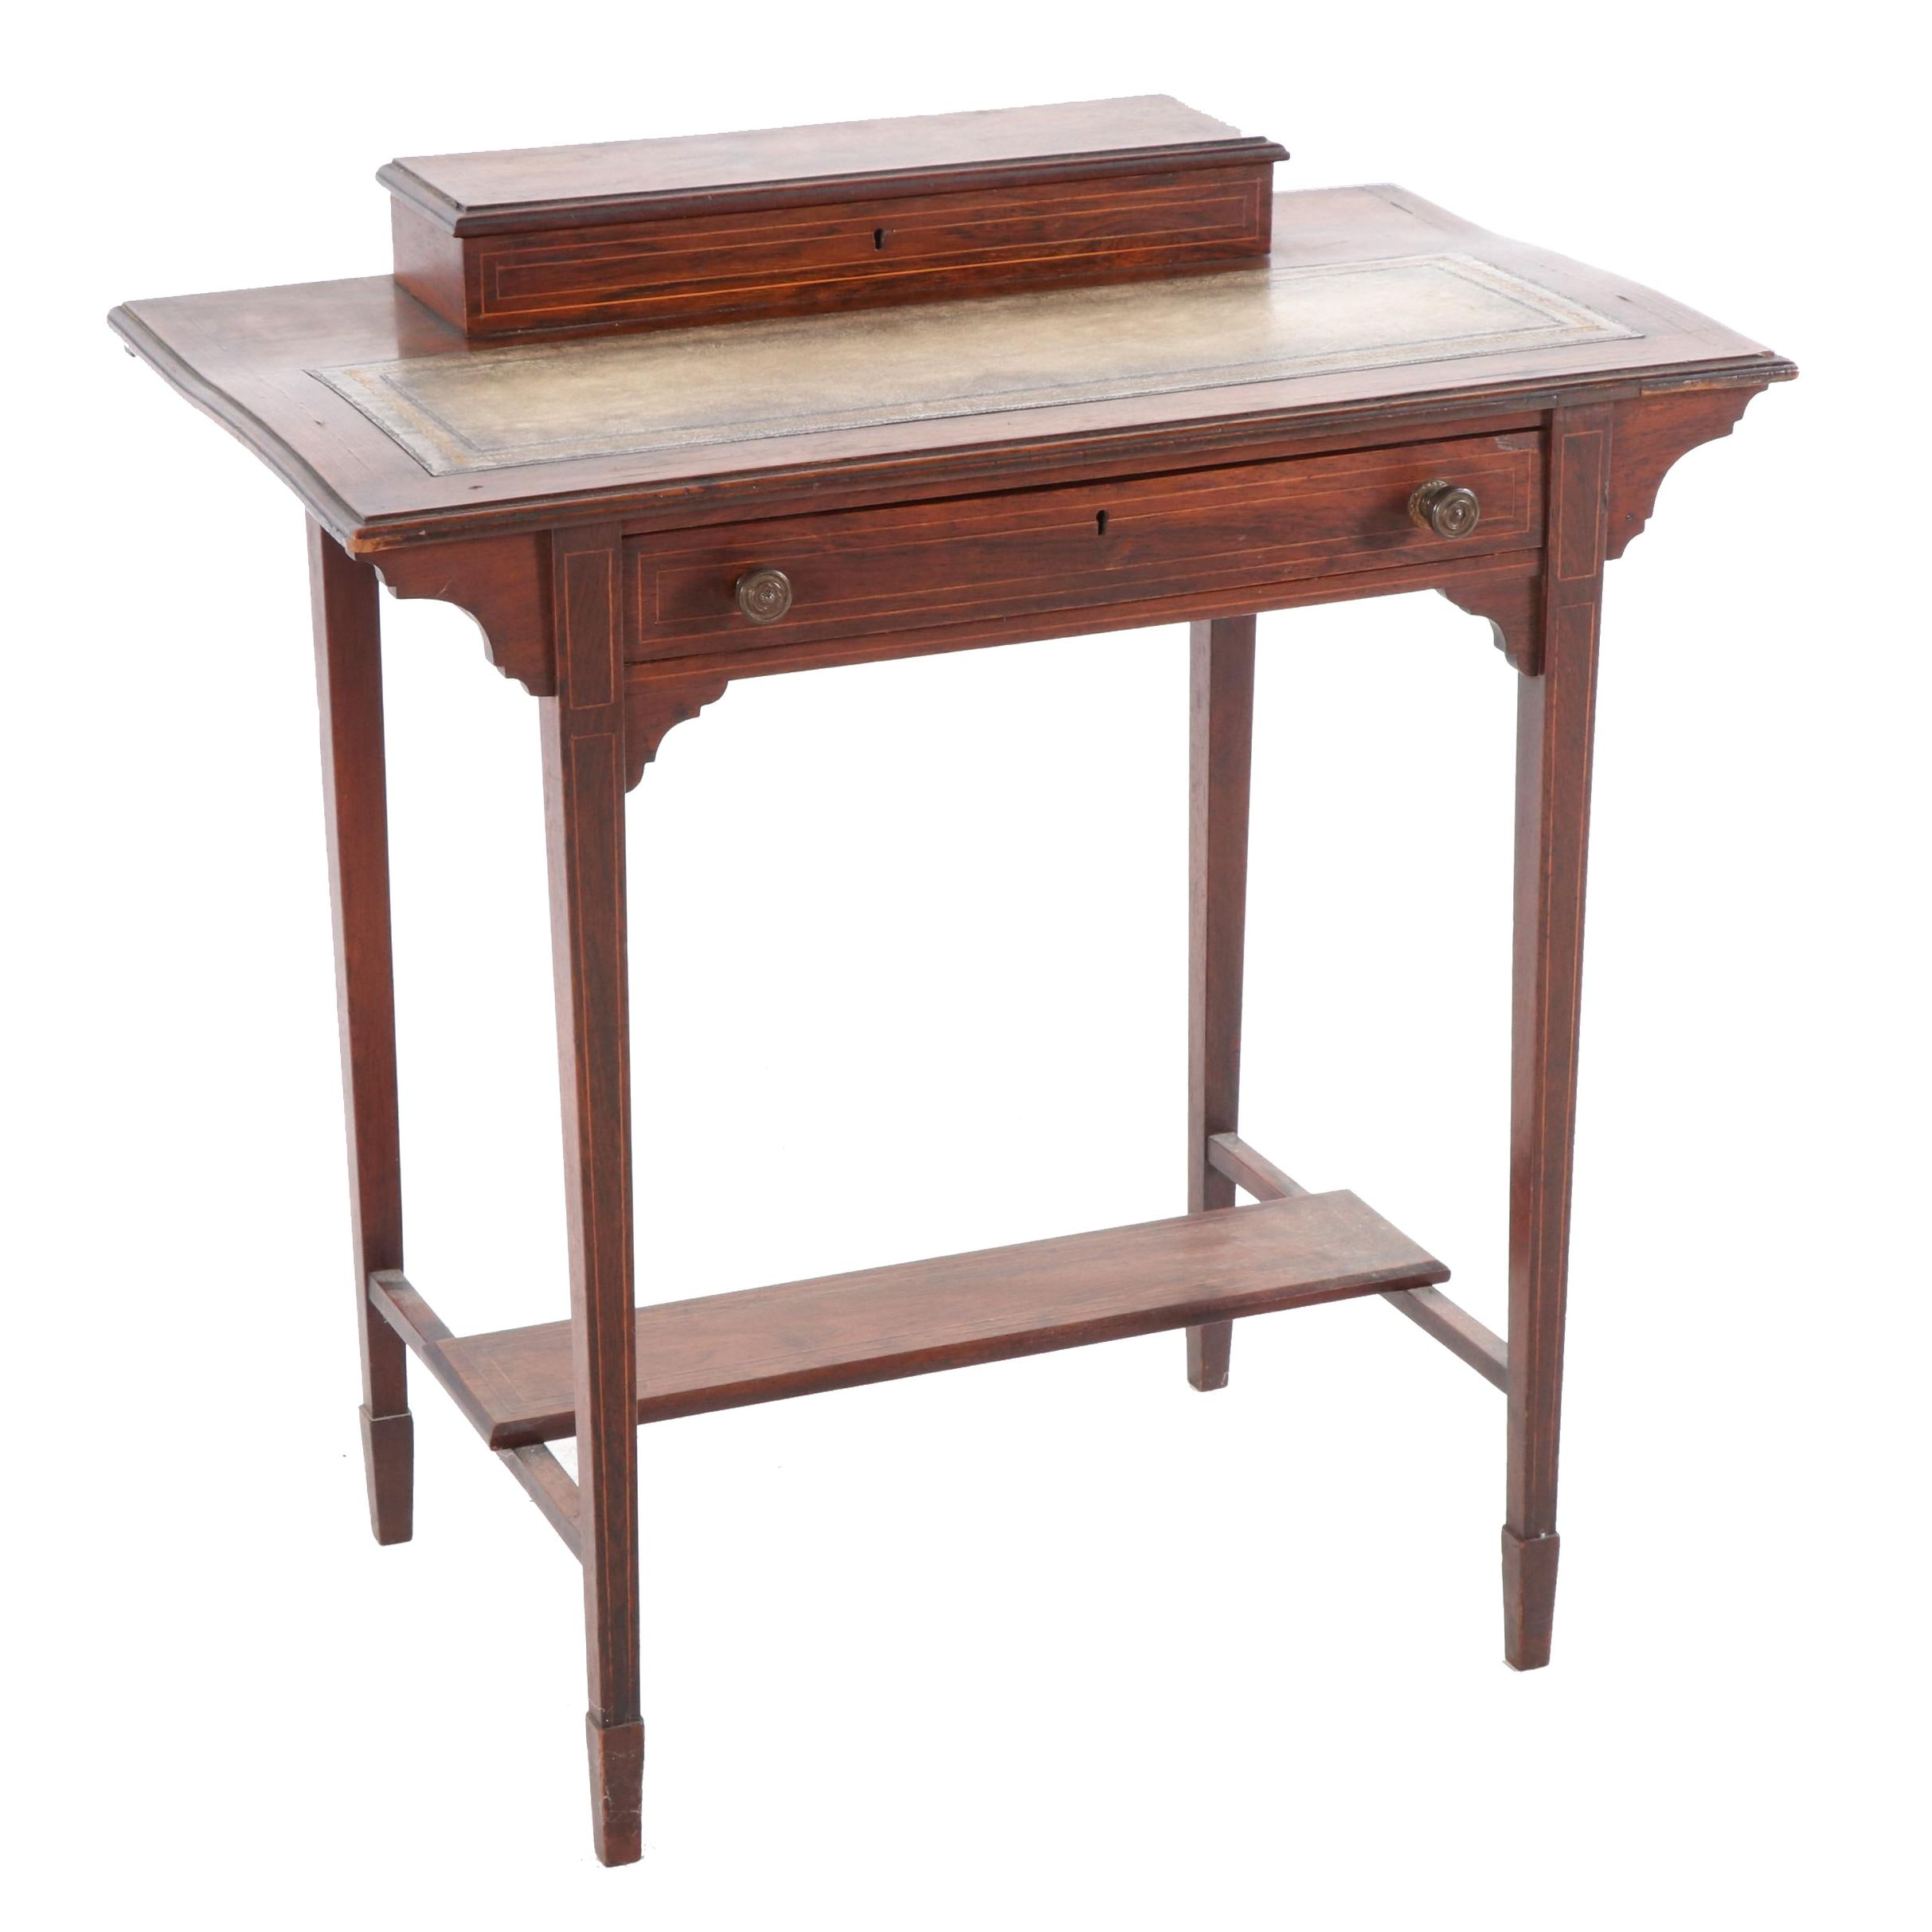 Victorian Rosewood String-Inlaid Writing Table, Mid to Late 19th Century